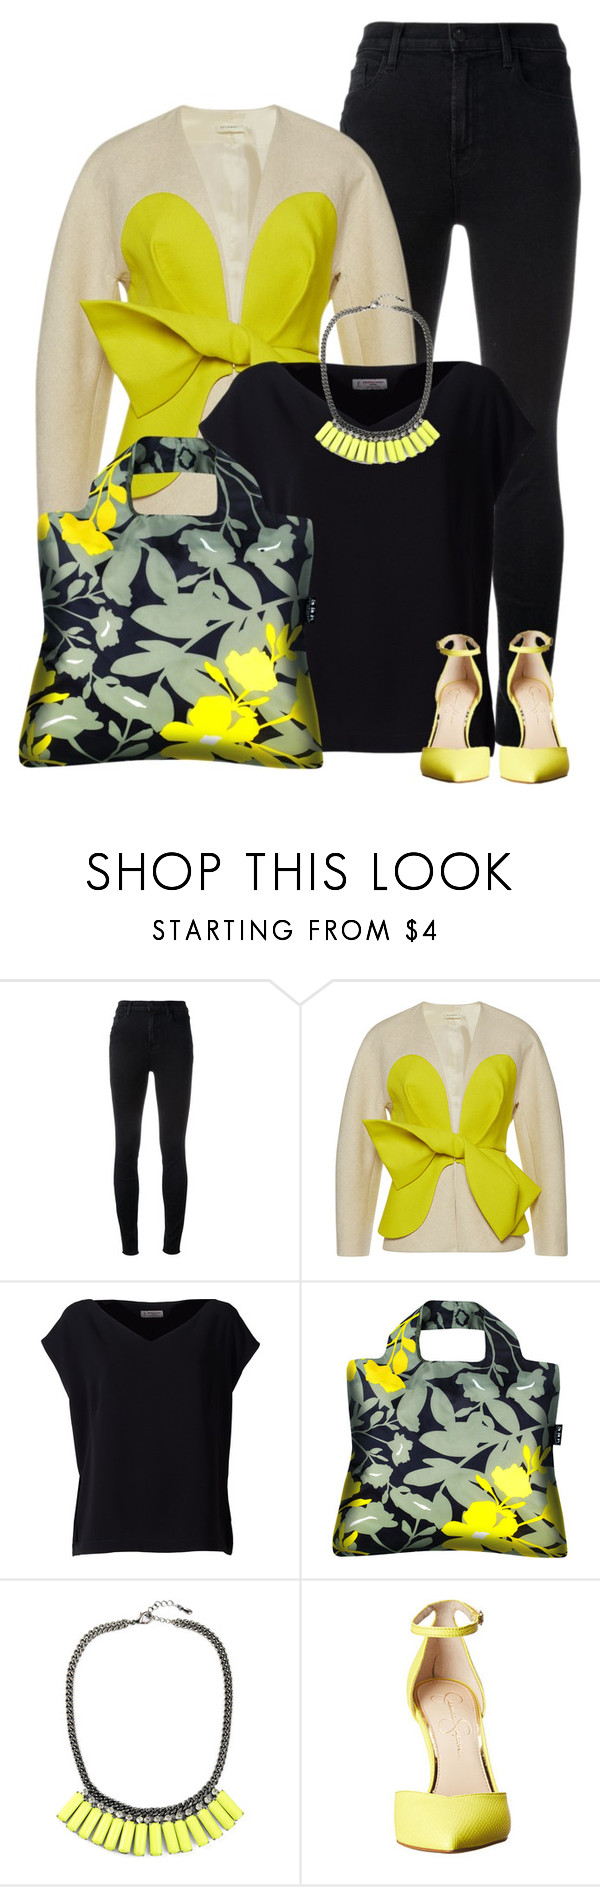 """""""Untitled #699"""" by oxigenio ❤ liked on Polyvore featuring J Brand, Delpozo, Alberto Biani and Jessica Simpson"""